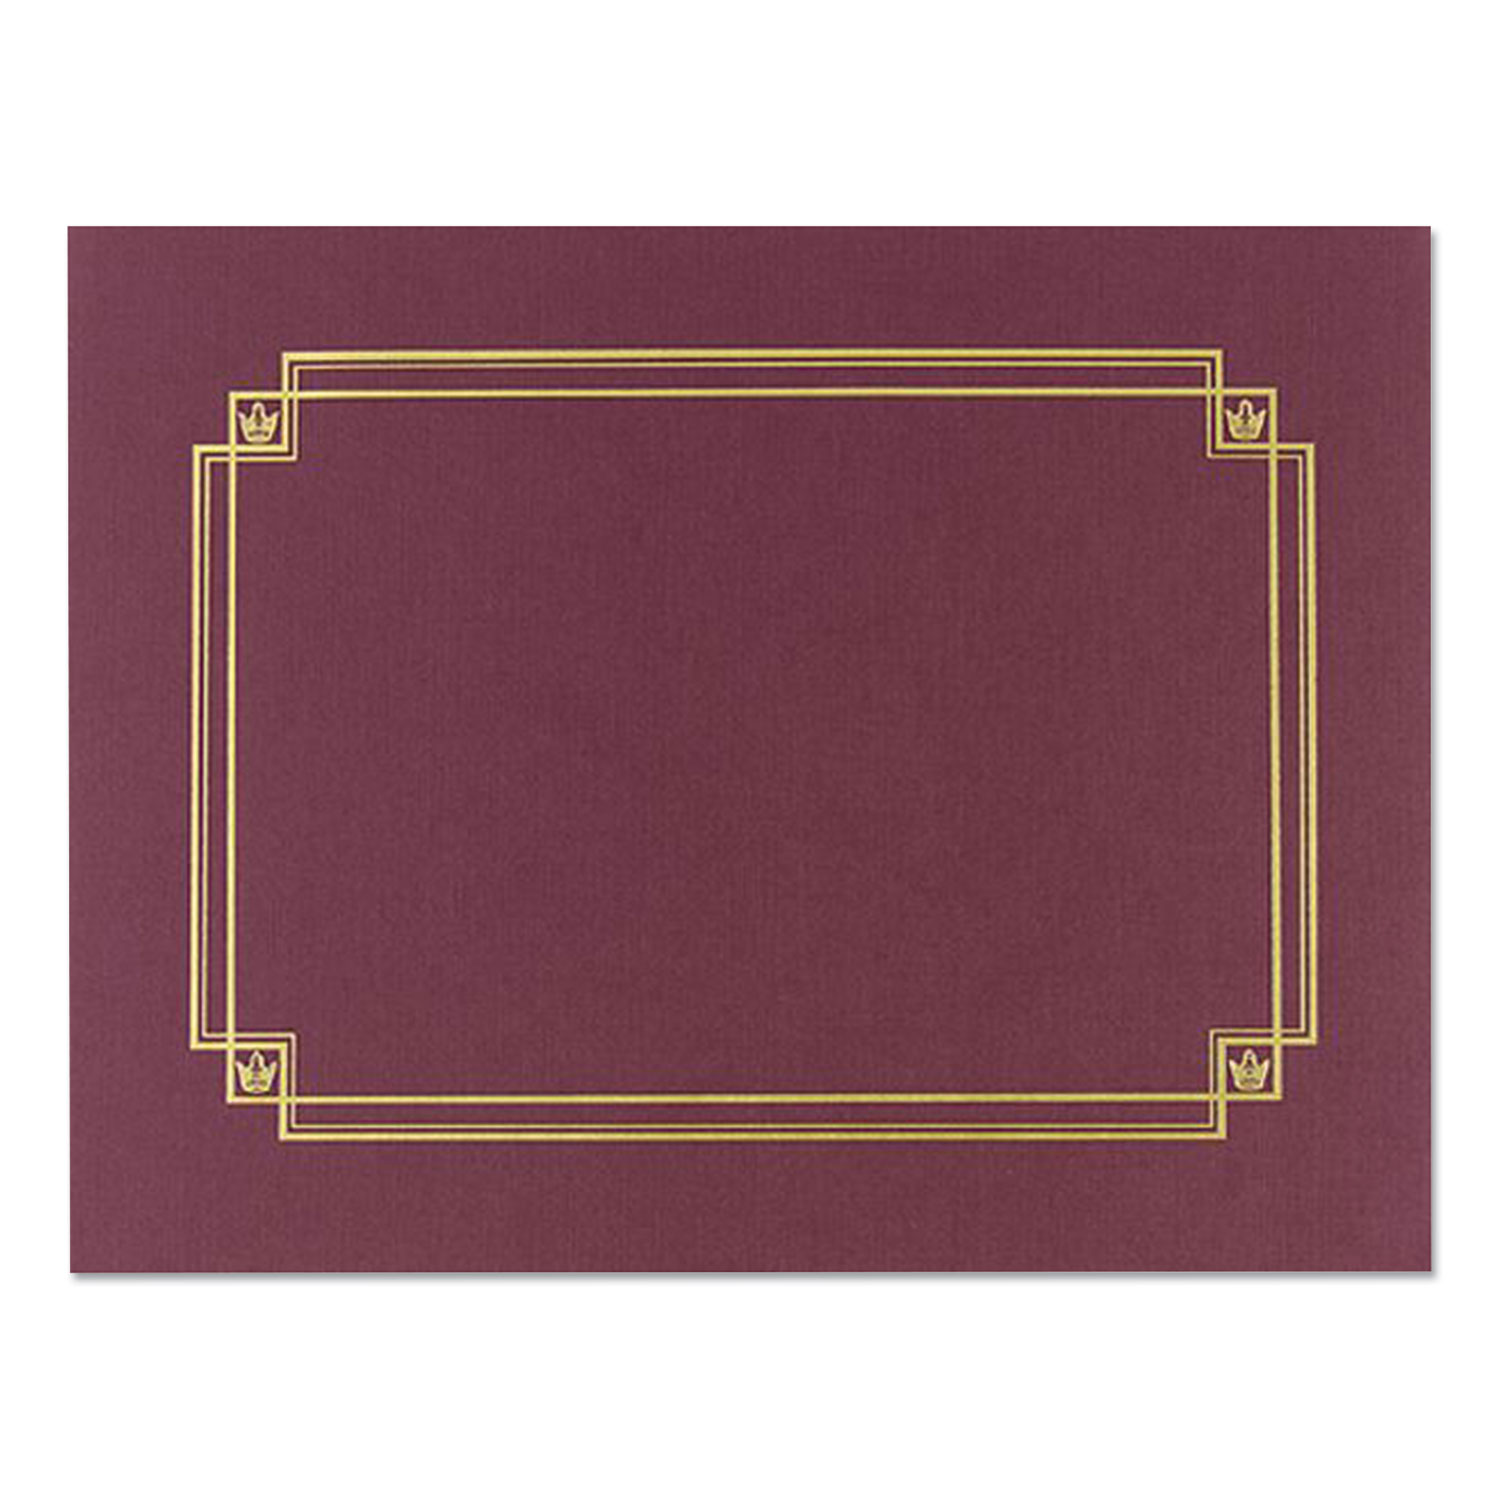 Great Papers!® Premium Textured Certificate Holder, 12.65 x 9.75, Burgundy, 3/Pack